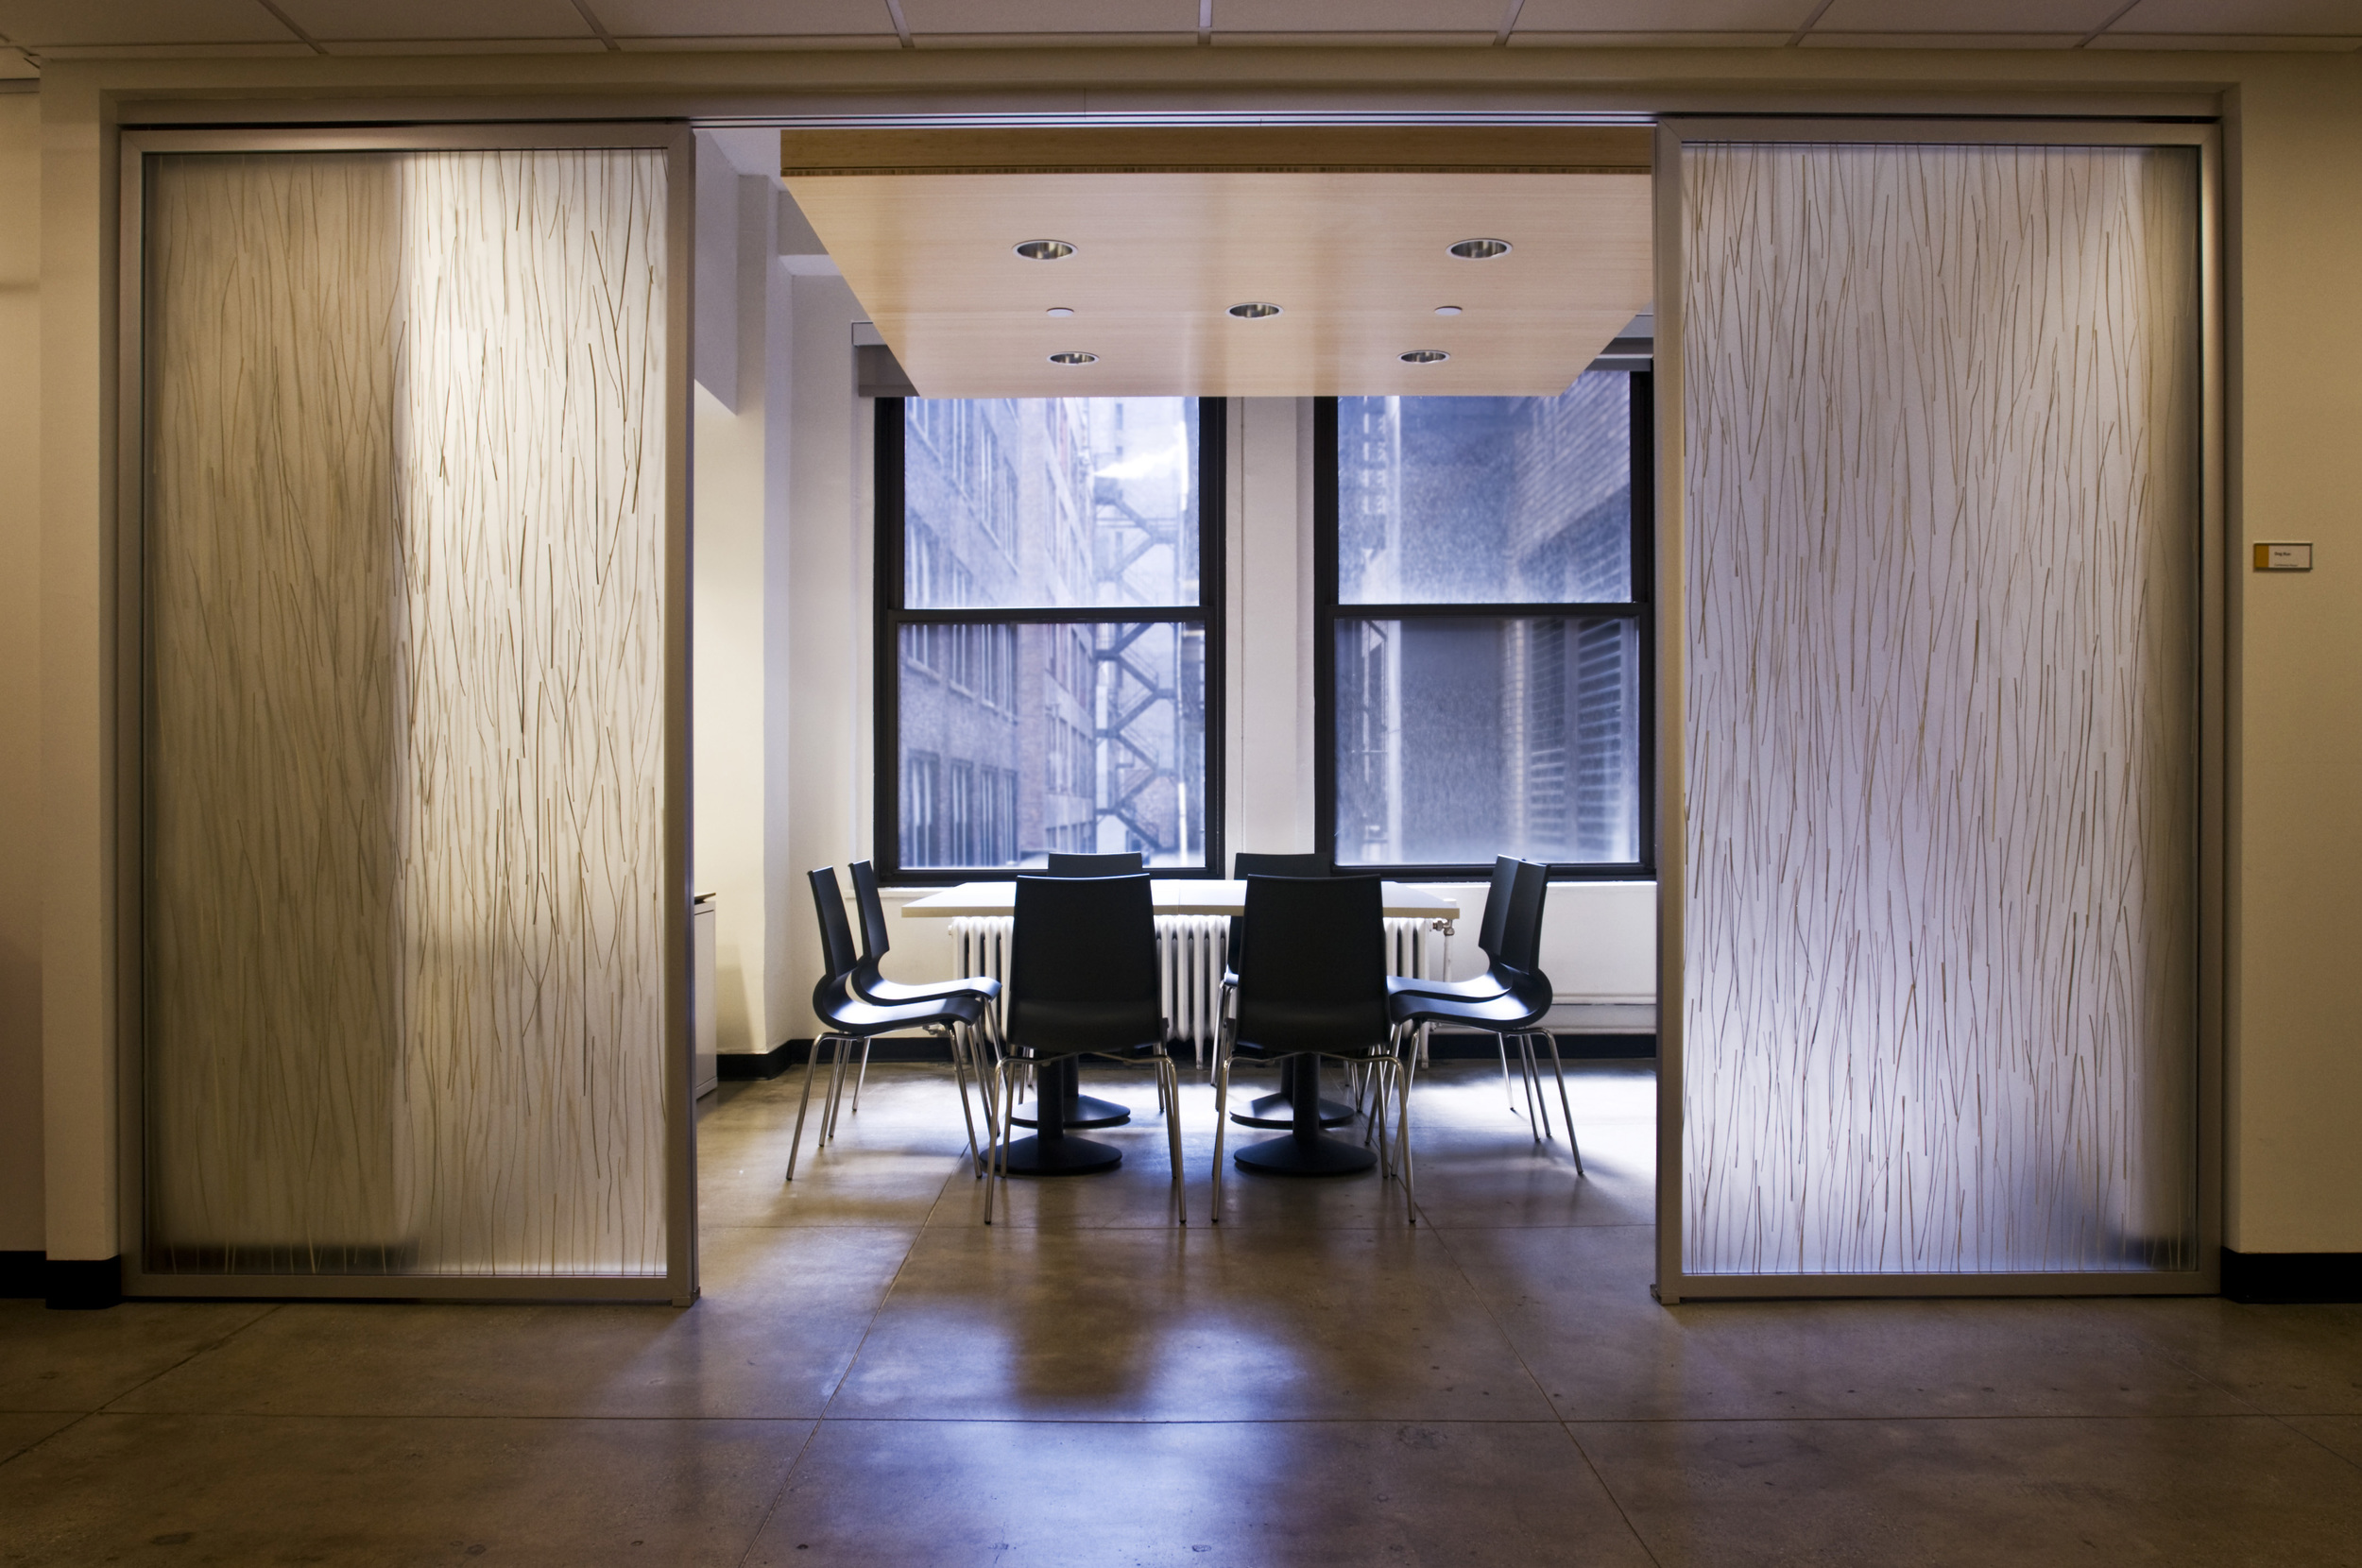 Renovation of two floors in an existing high-rise in the garment district of lower Manhattan for use as administrative offices for a national non-profit.